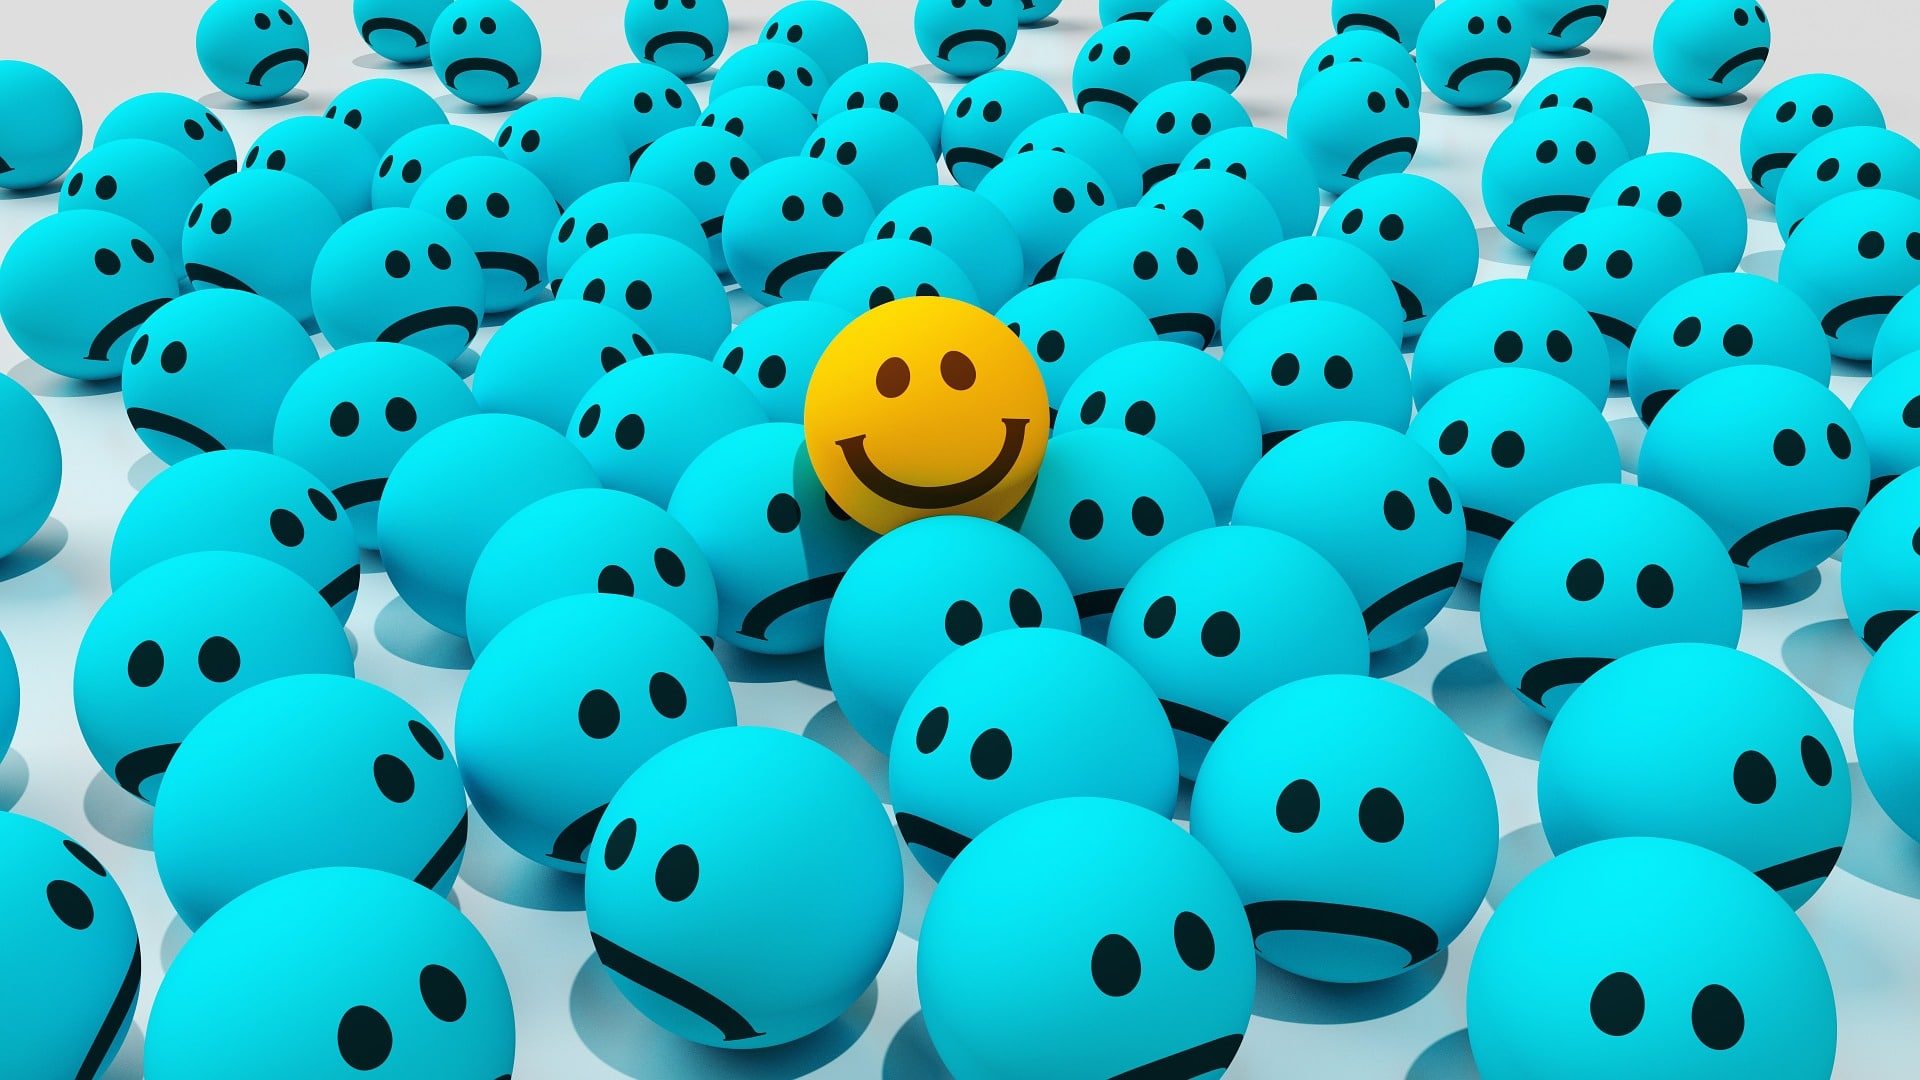 happy smiley face sticking out among other sad blue smiley faces